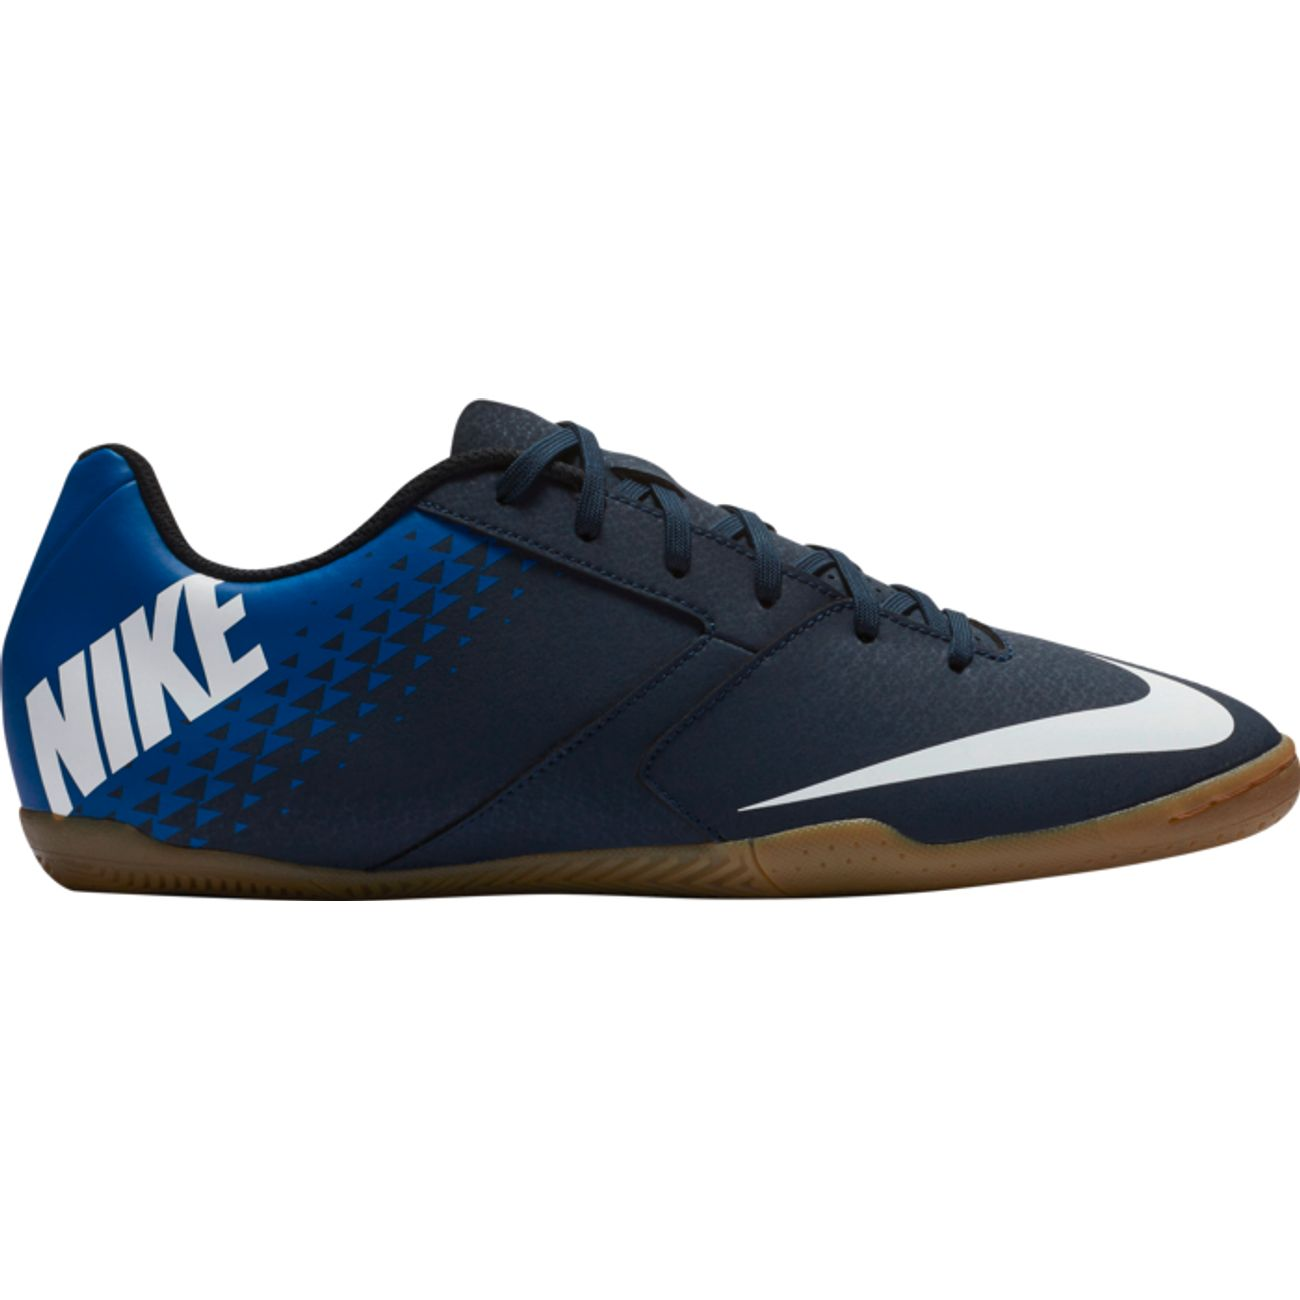 CHAUSSURES Football homme NIKE BOMBAX IC 18